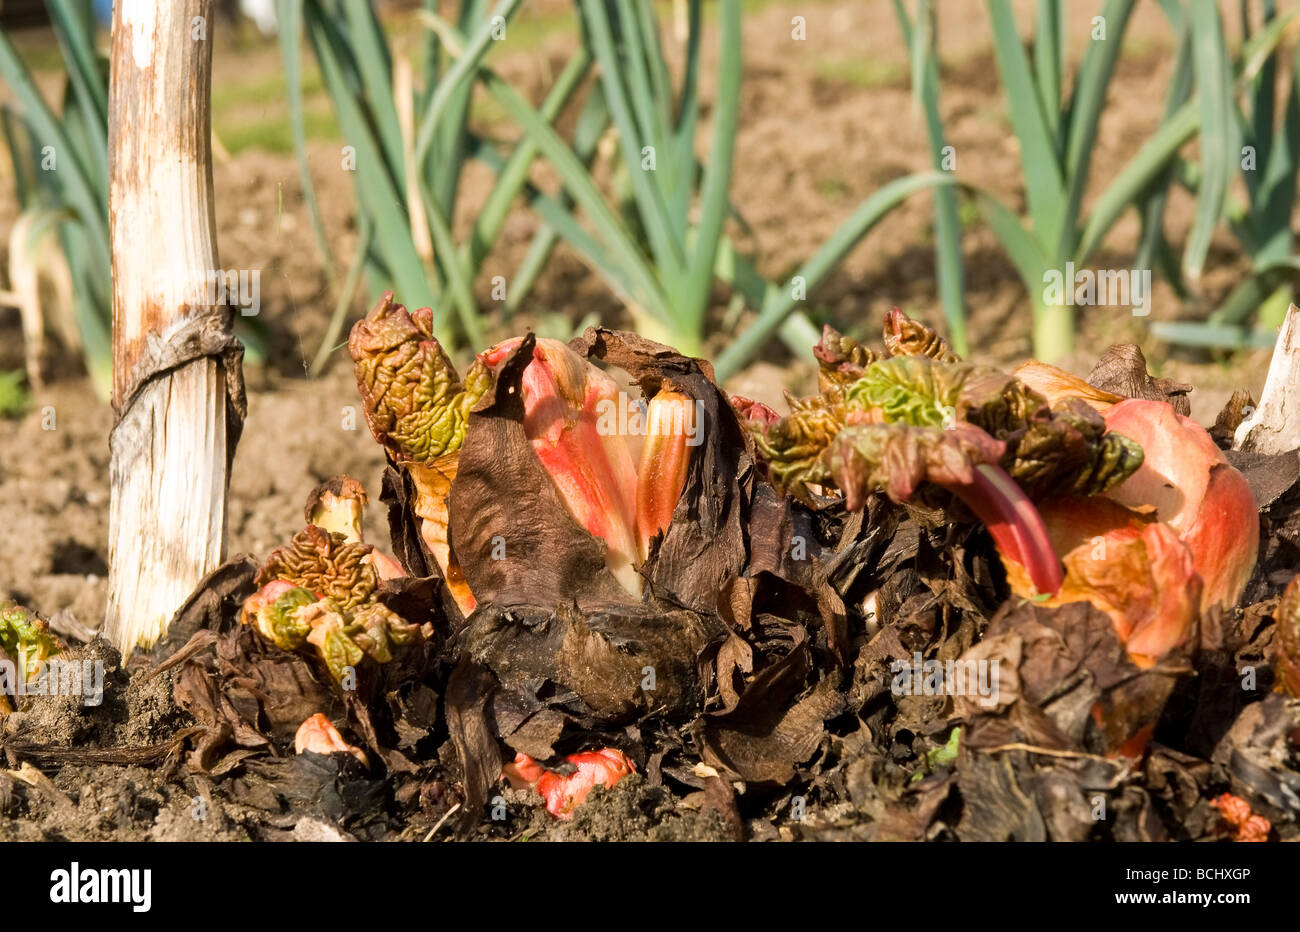 rhubarb rhizomes growing in early spring - Stock Image